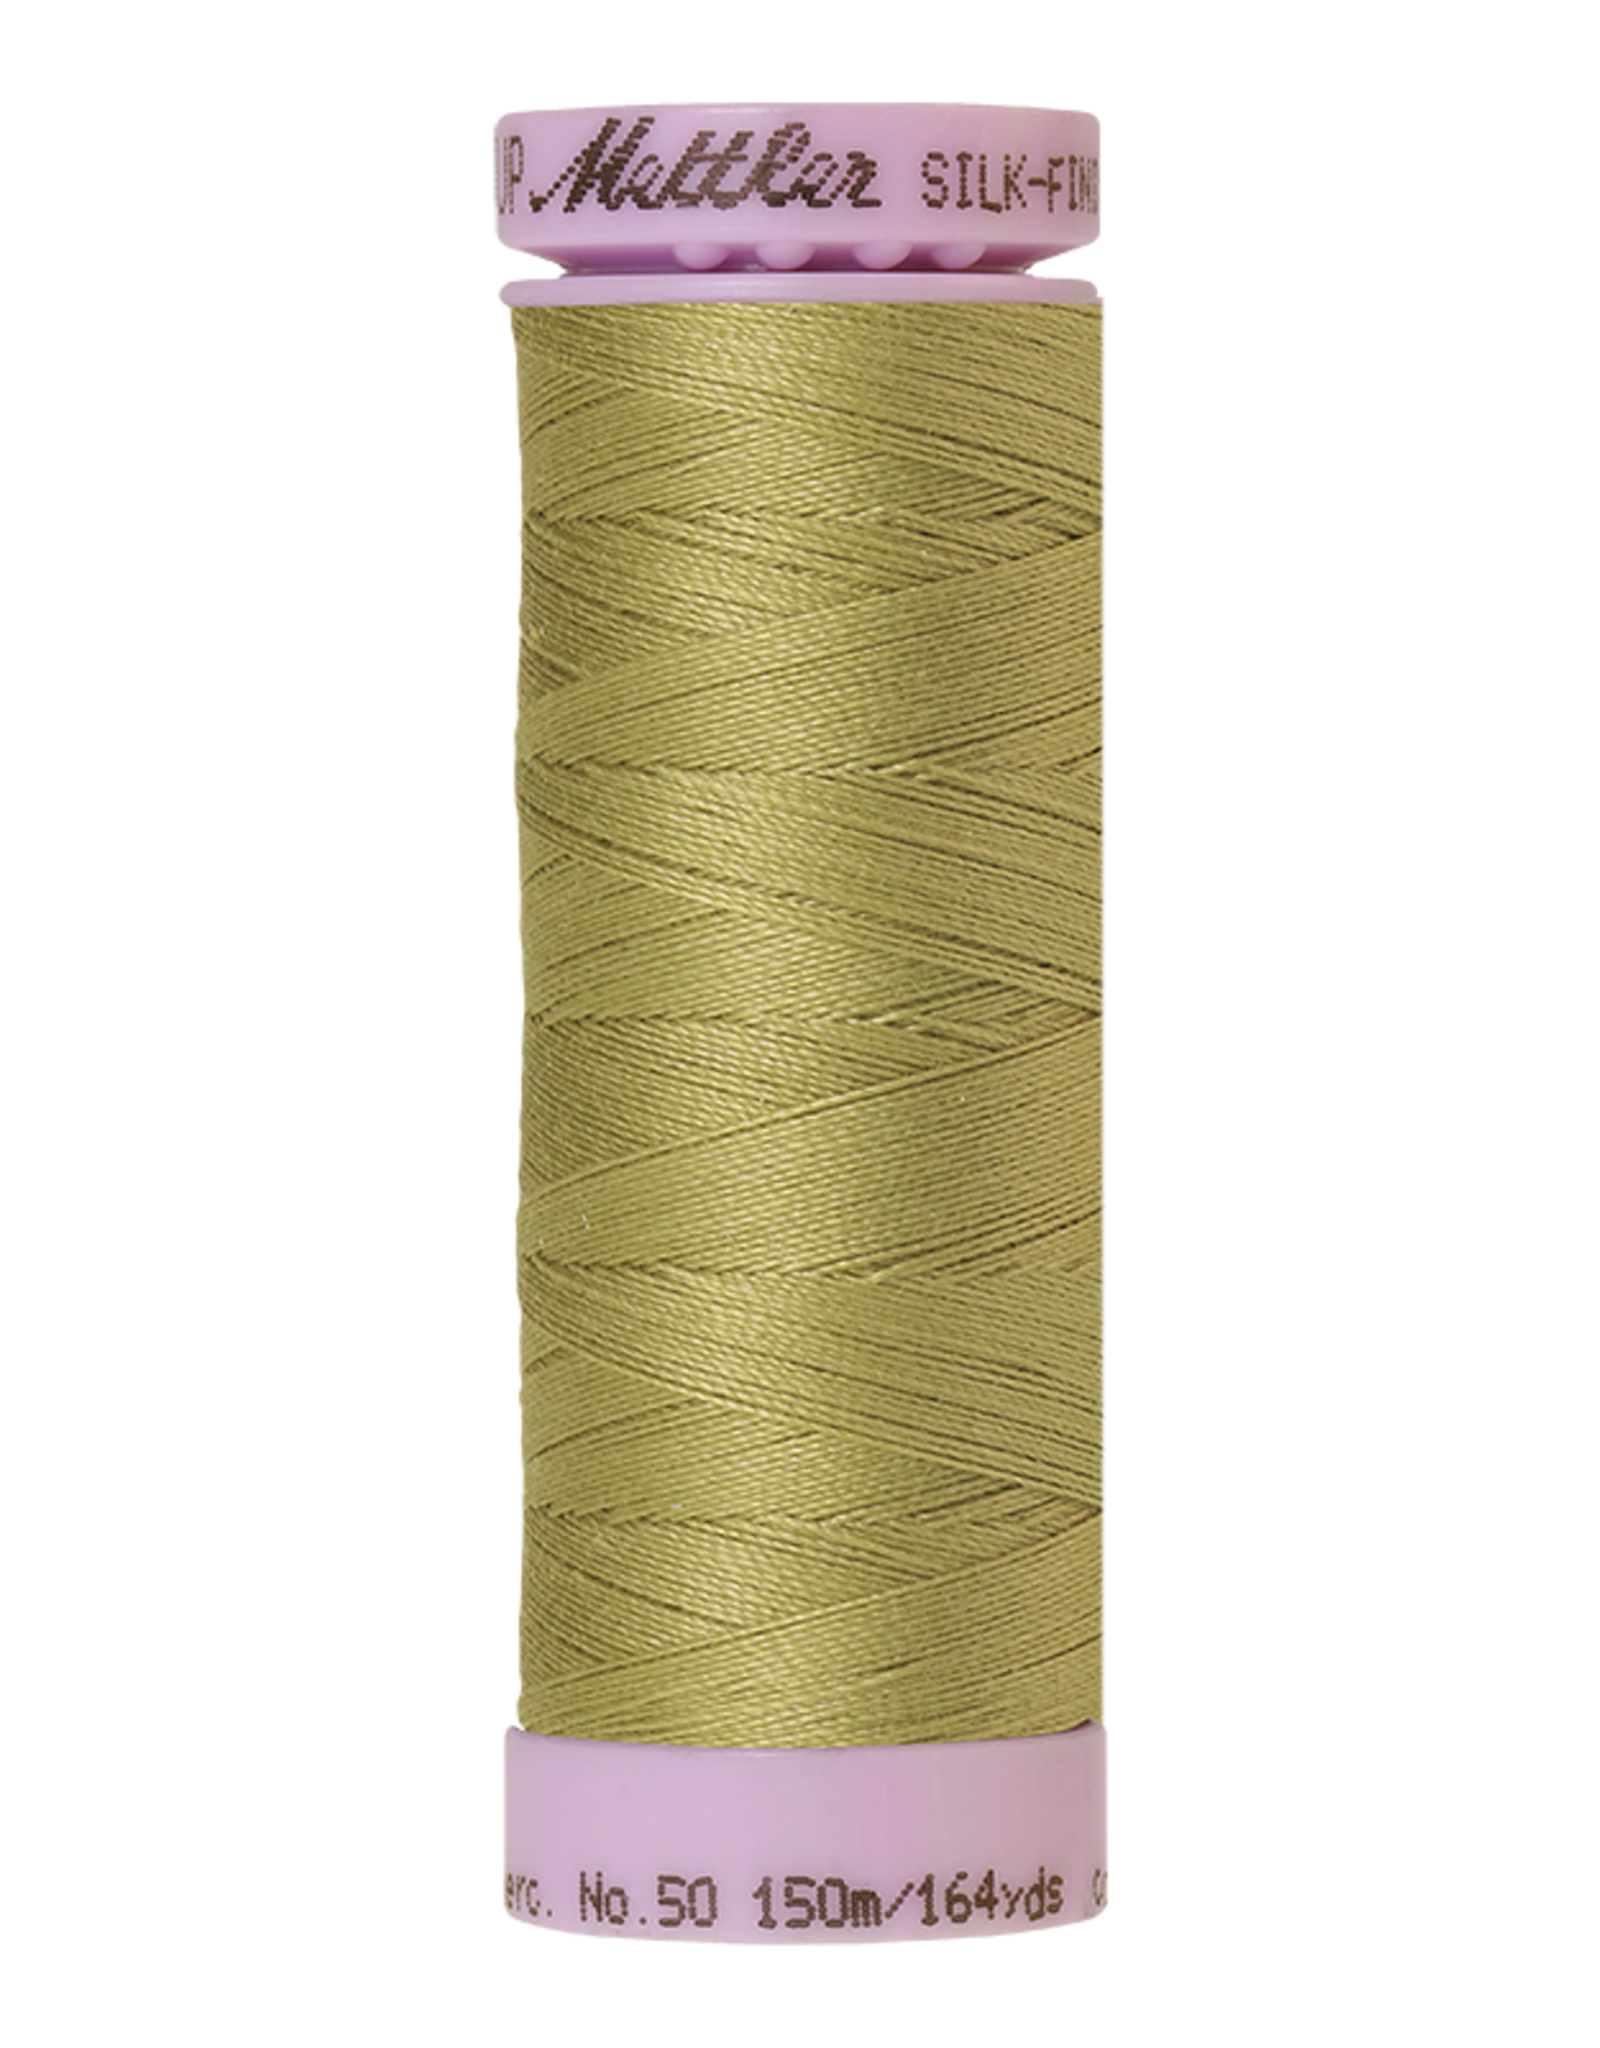 Mettler Silk Finish Cotton 50 - 150 meter - 1148